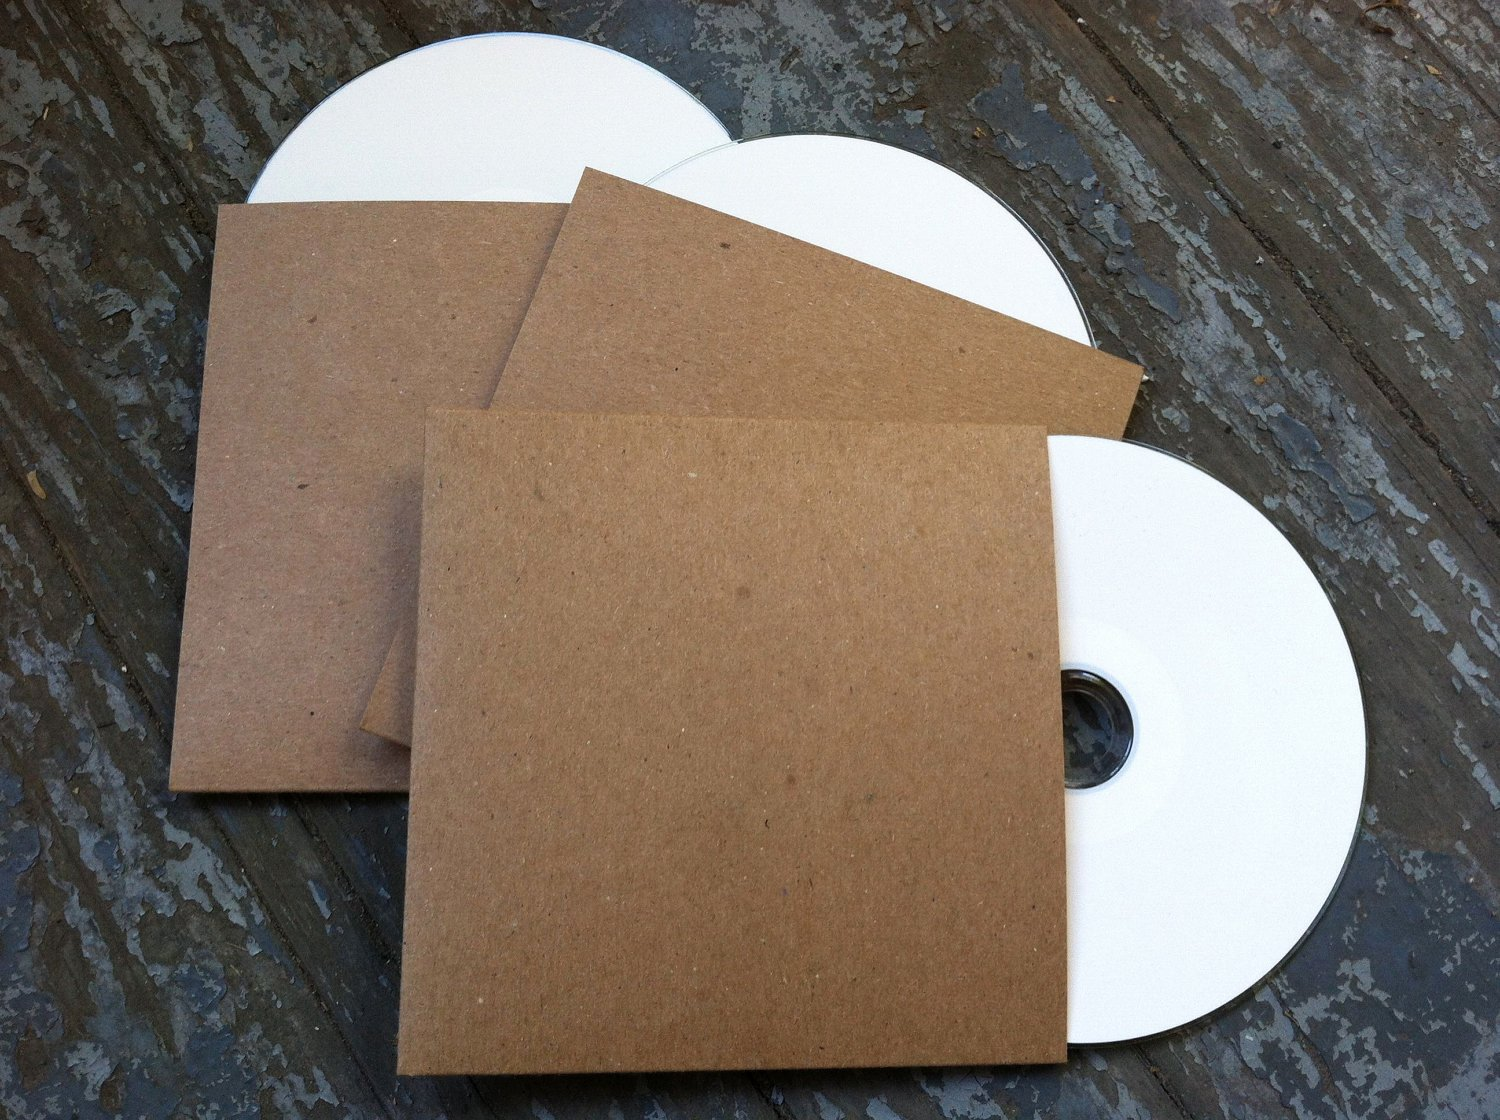 Cd Dvd Label software